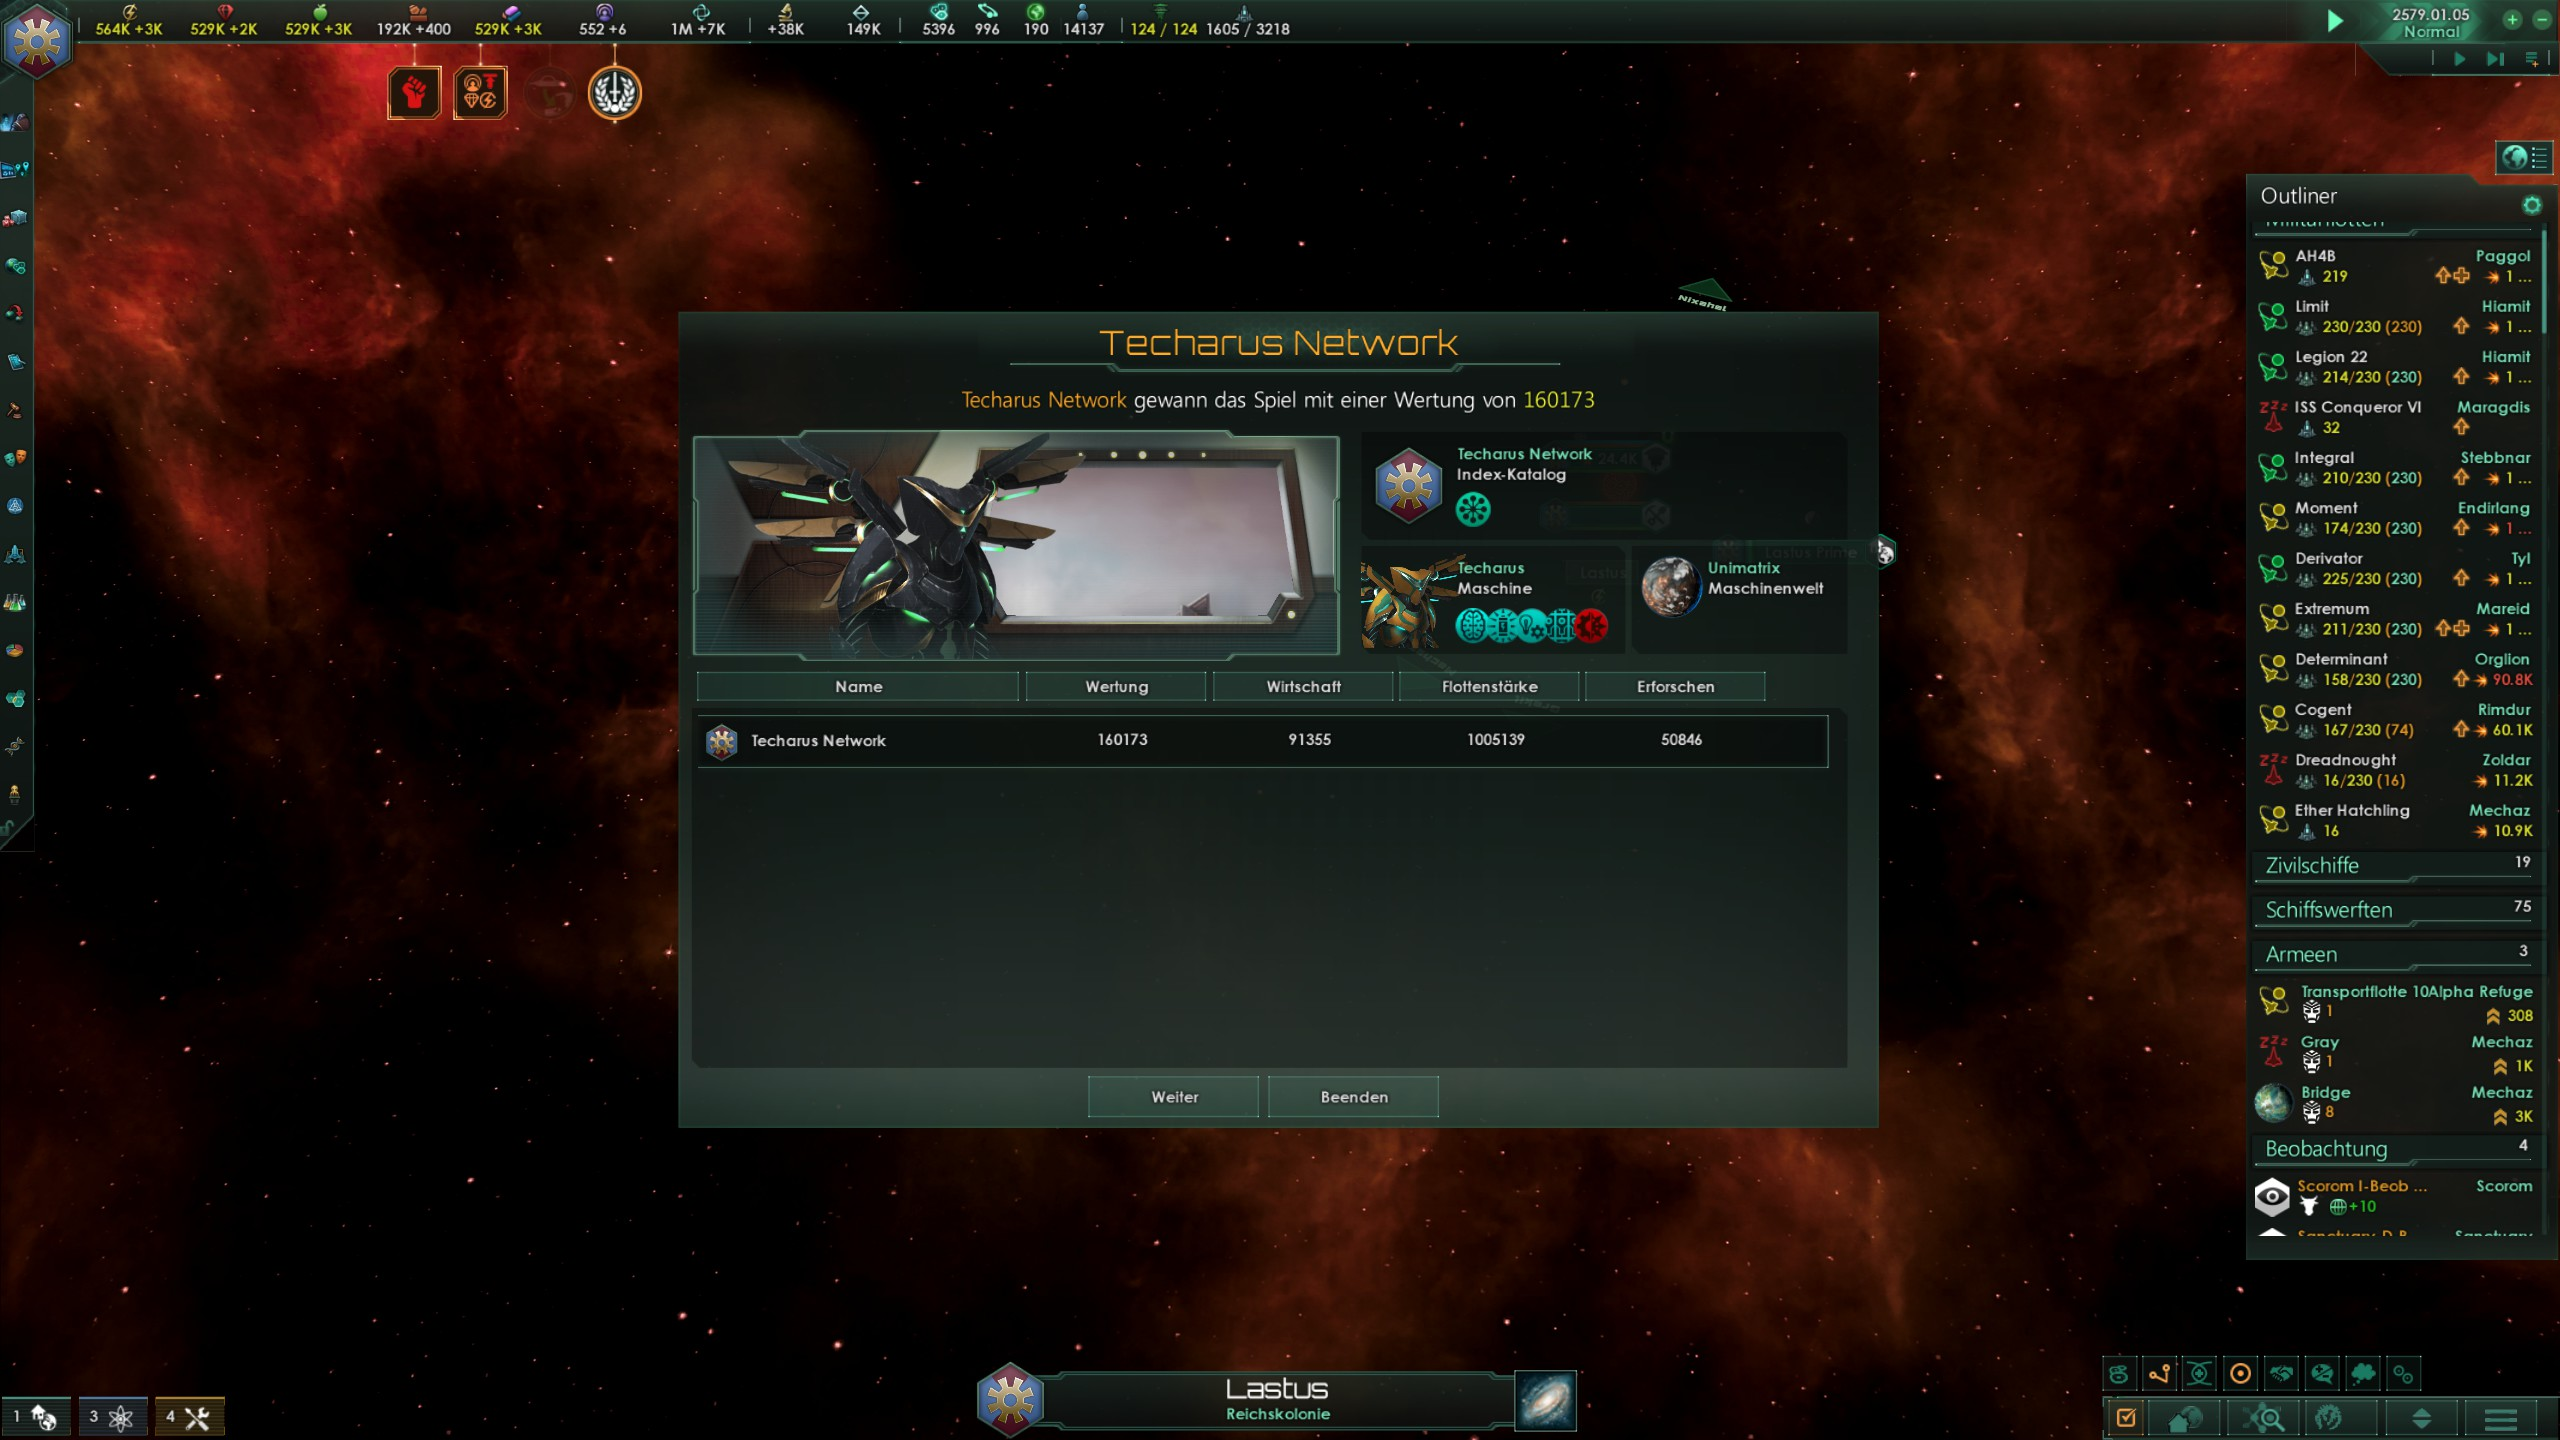 stellaris verwaltungs limit